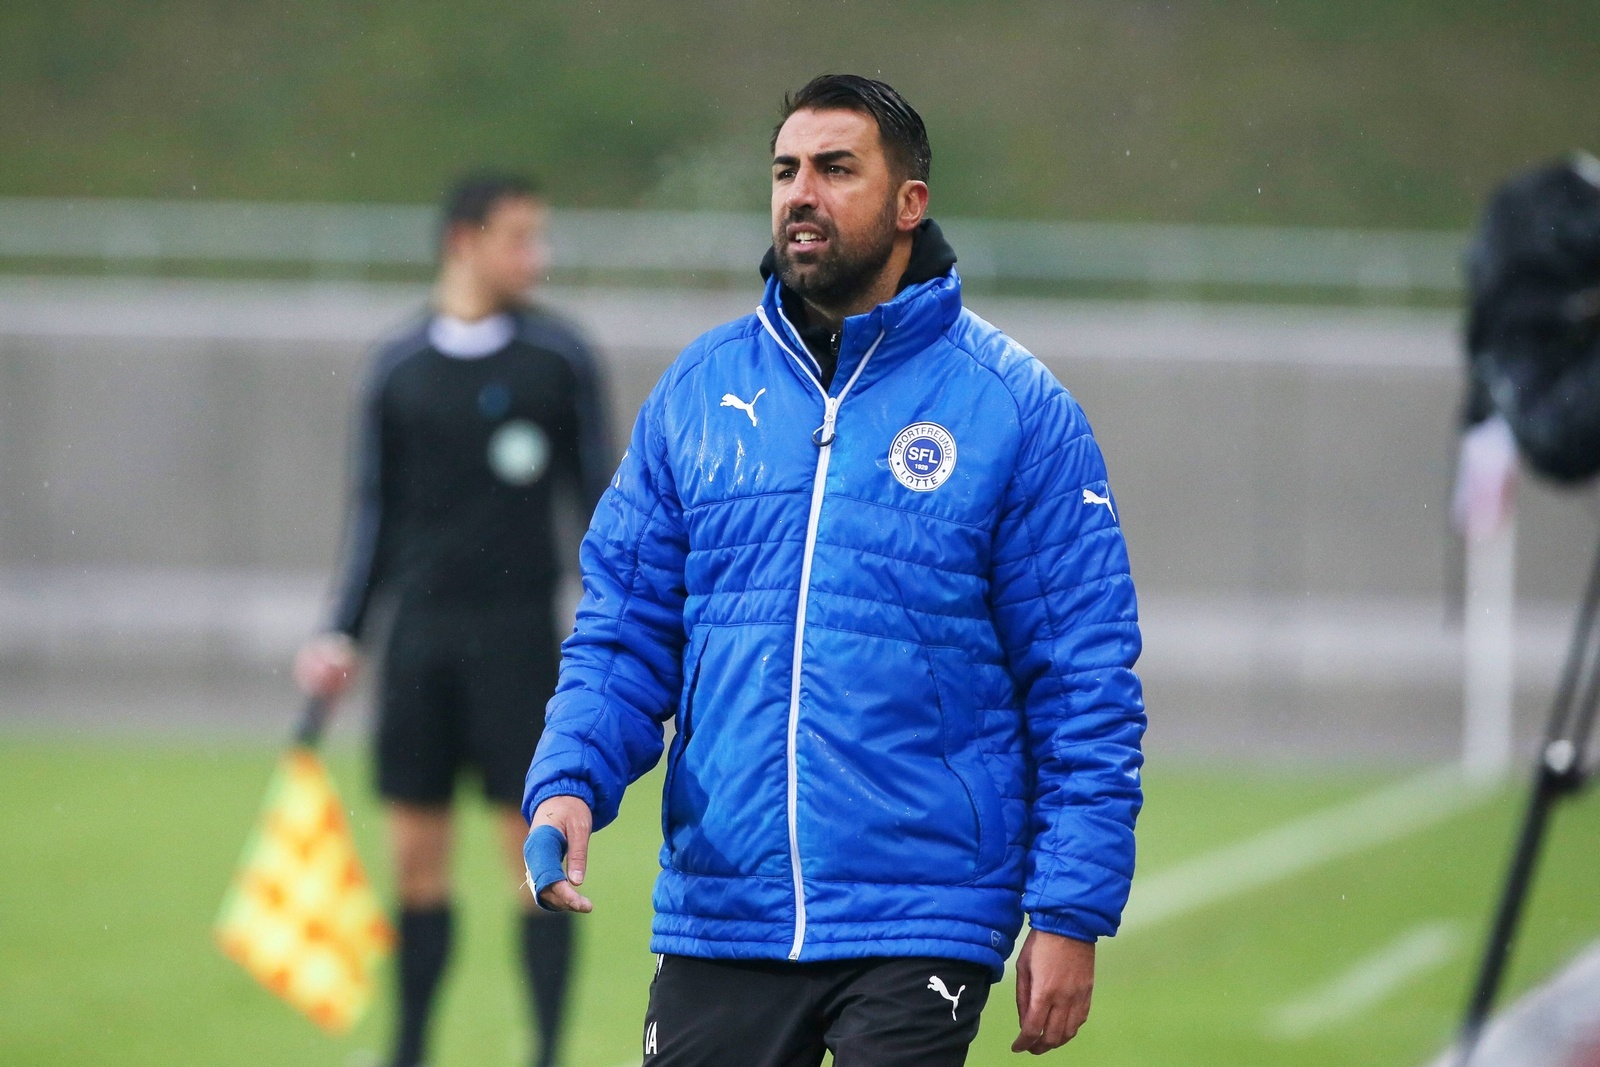 Ismail Atalan, Trainer in Lotte